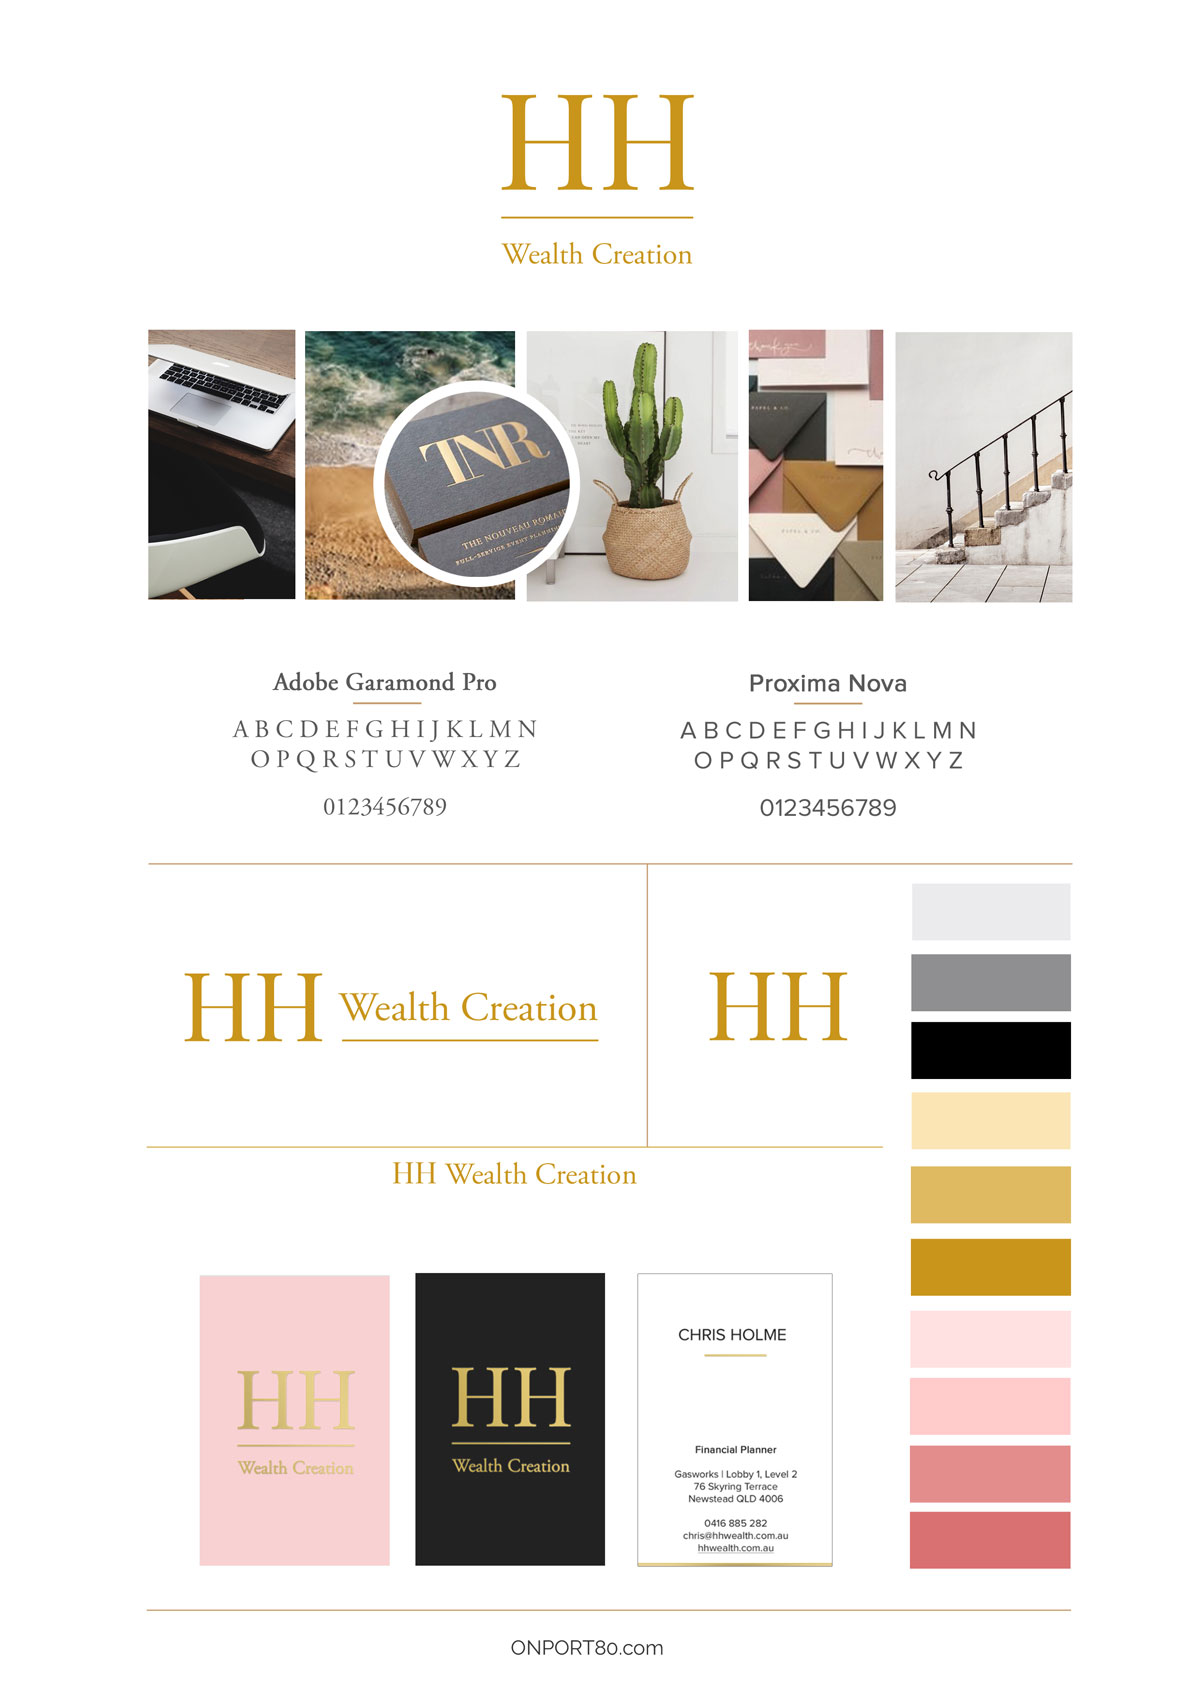 HH Wealth Brand Style Guide by On Port 80